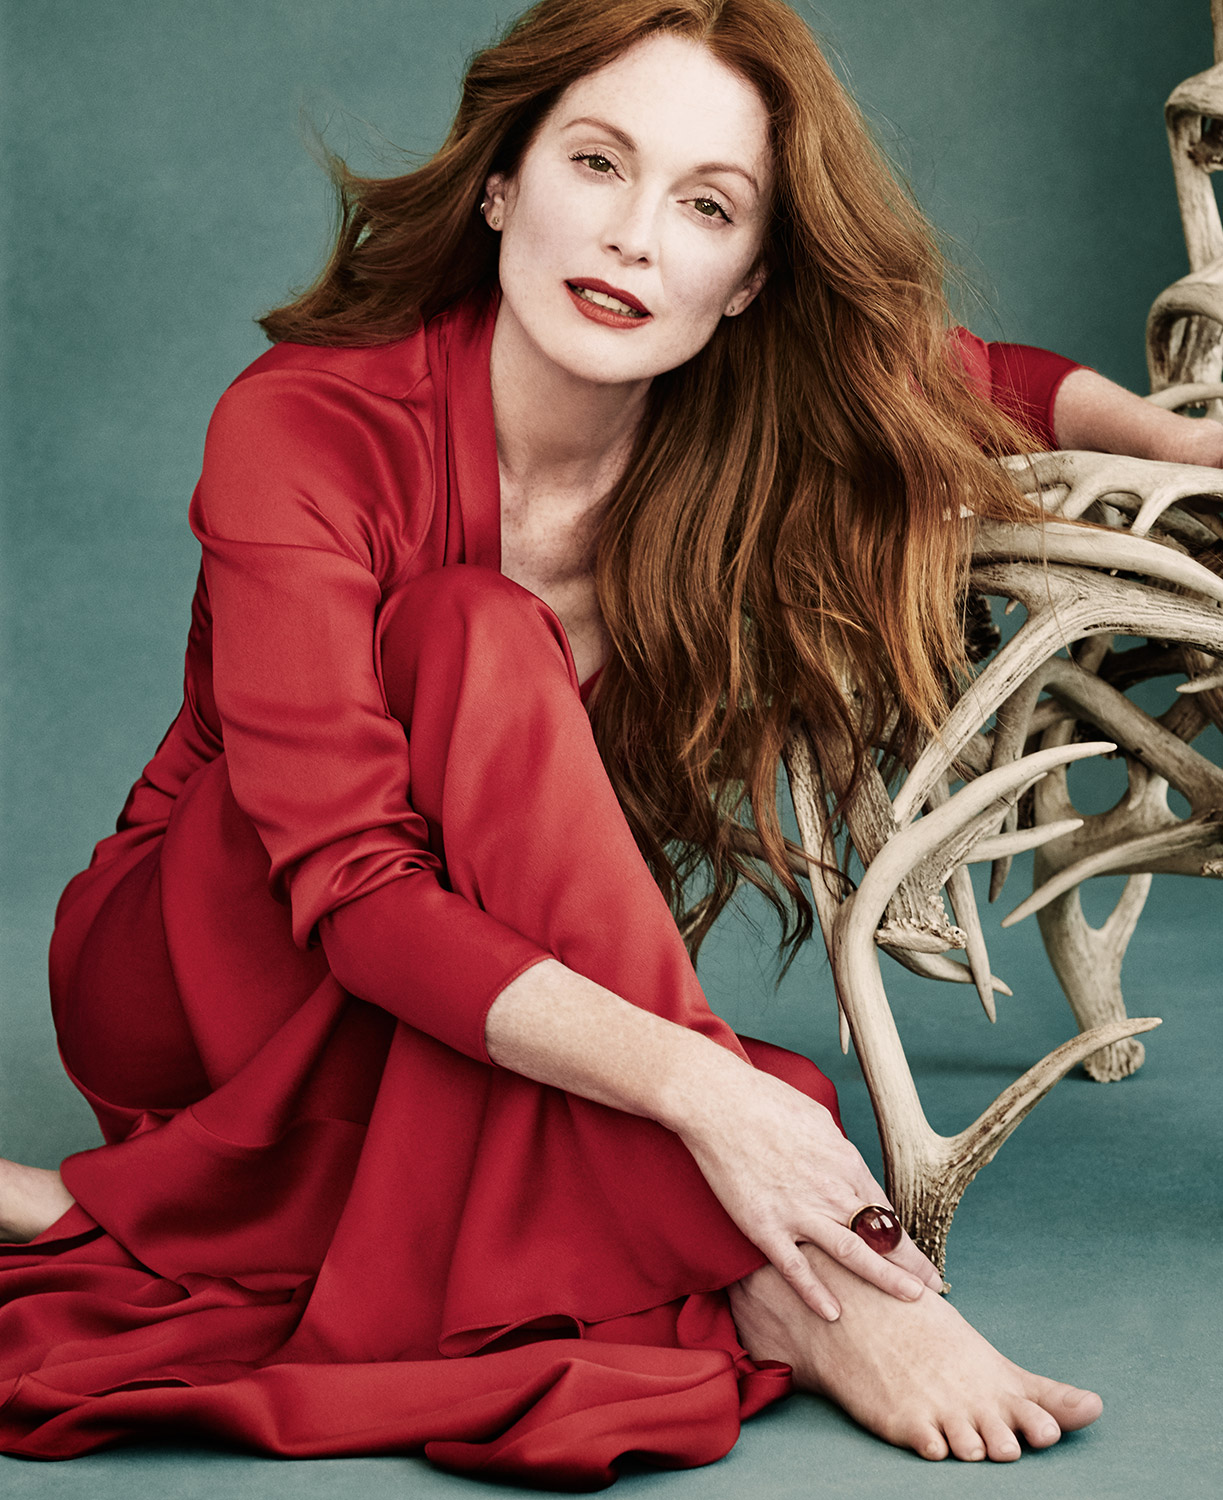 06-JULIANNE-MOORE.jpg